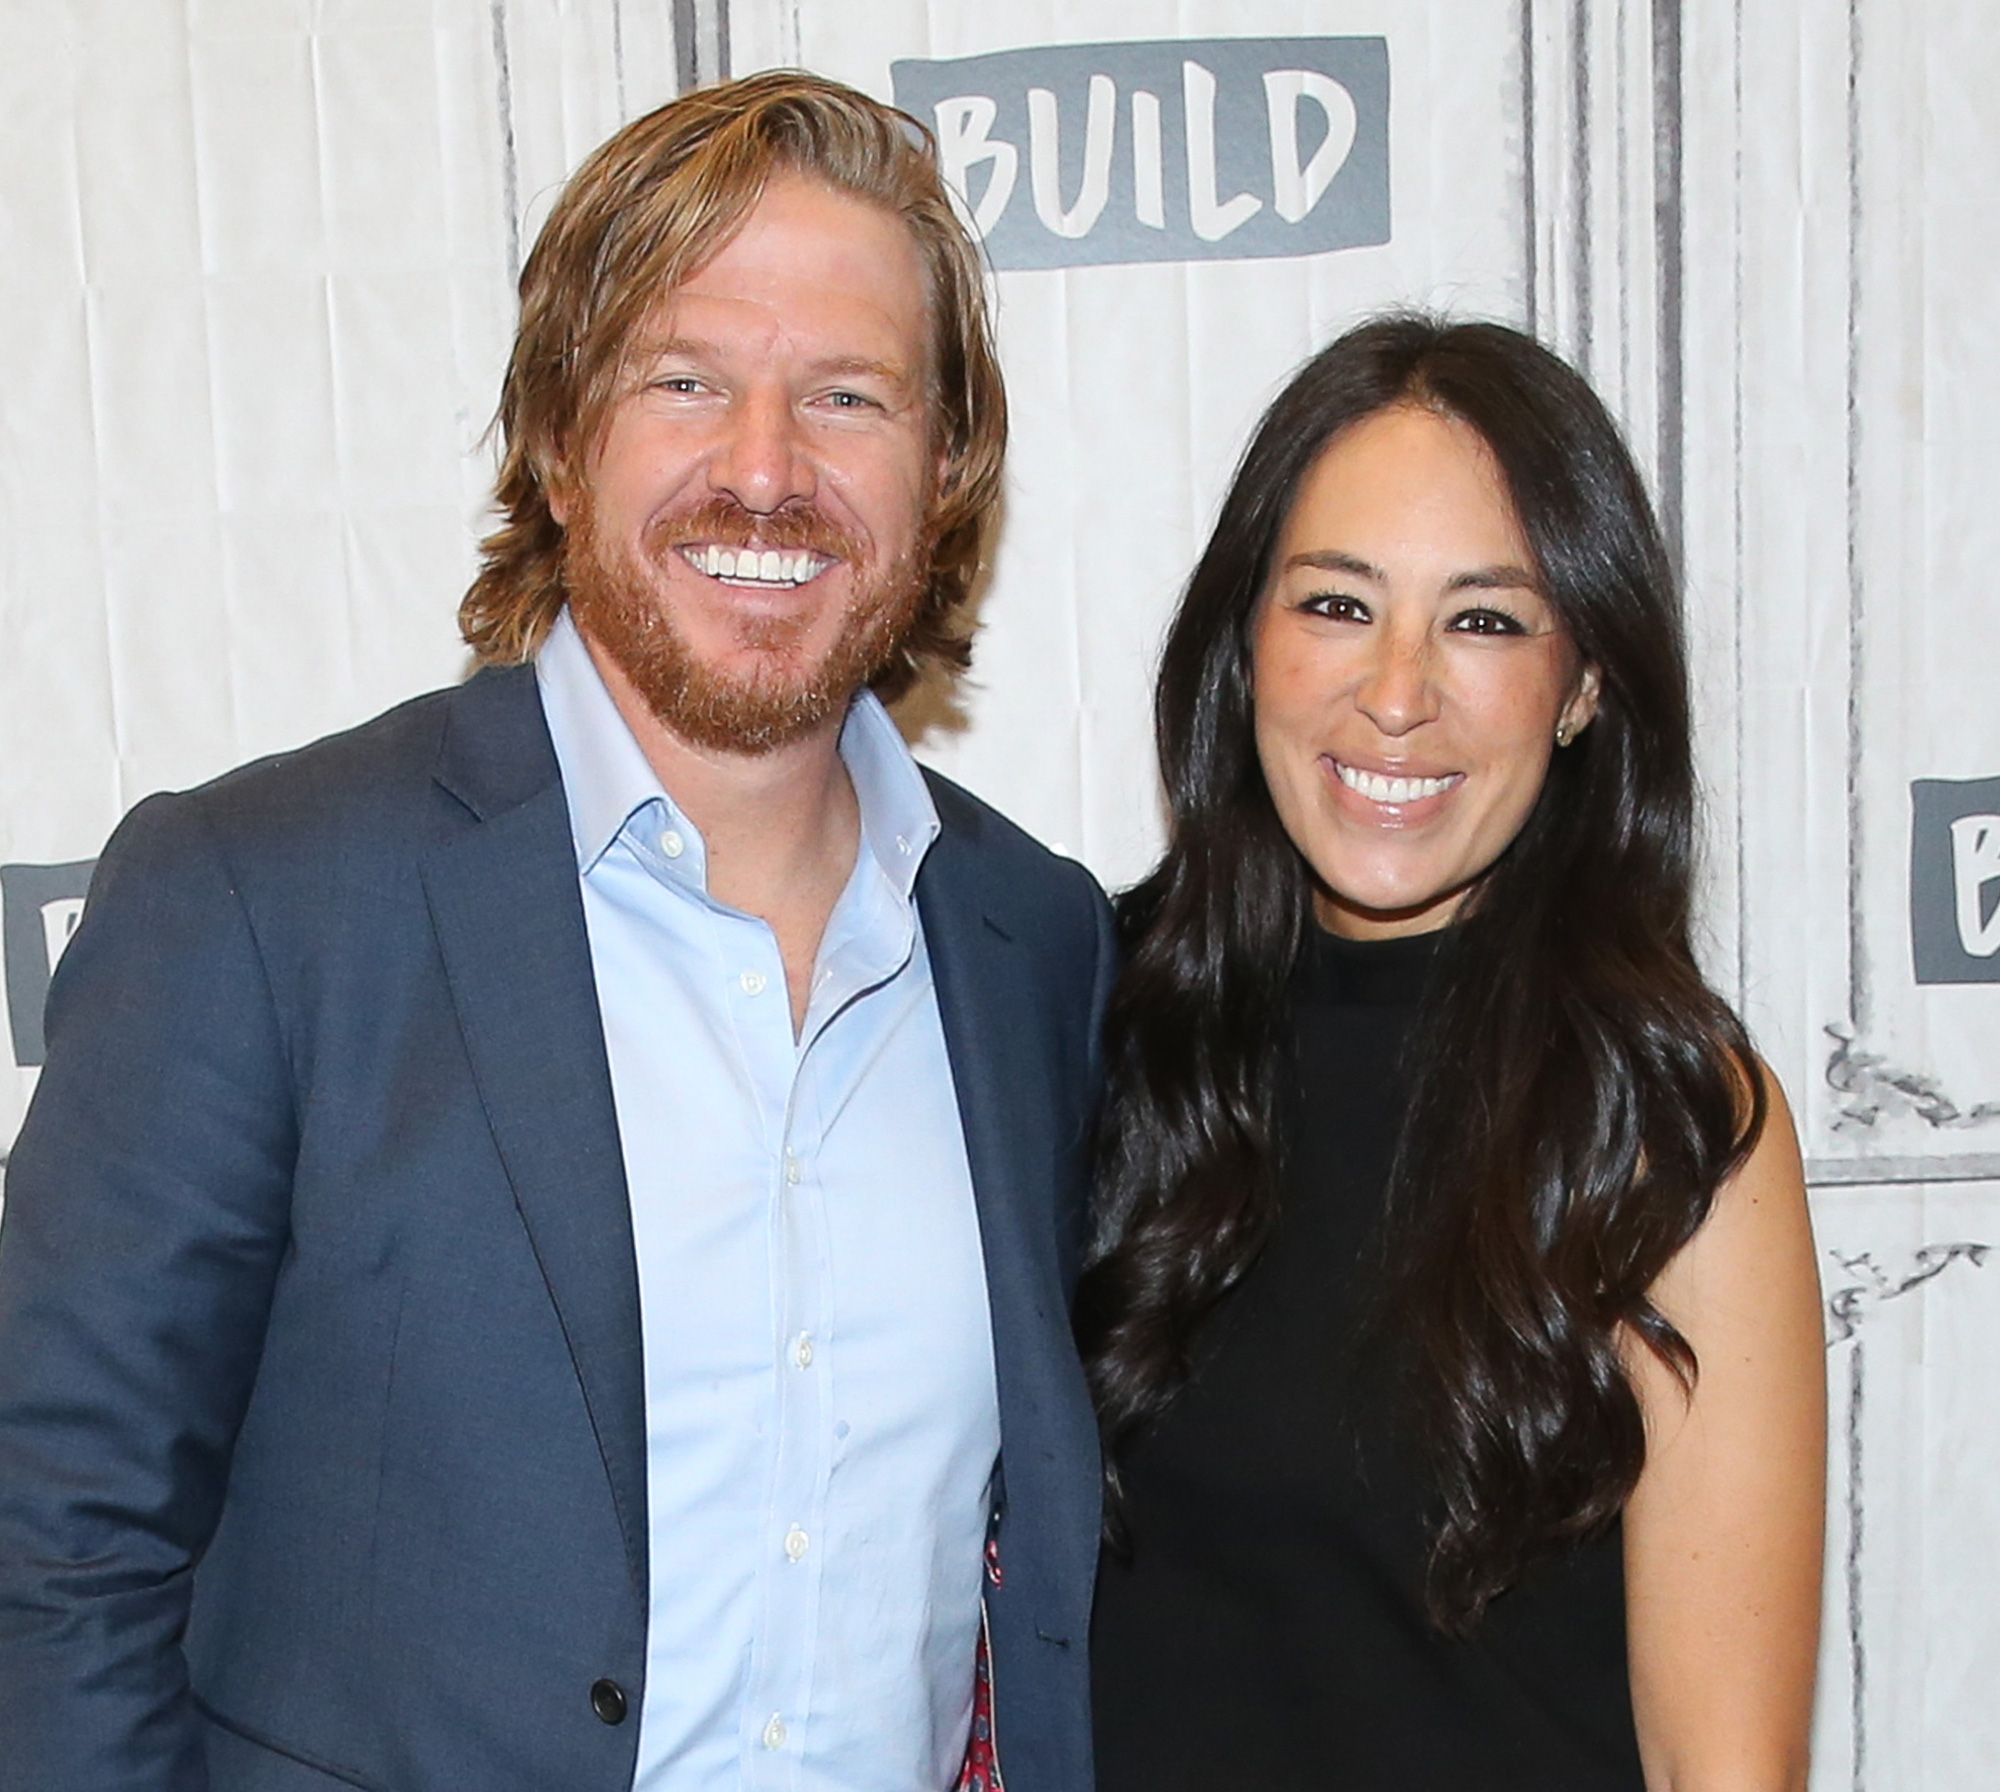 Chip and Joanna Gaines Are Expecting Baby No. 5